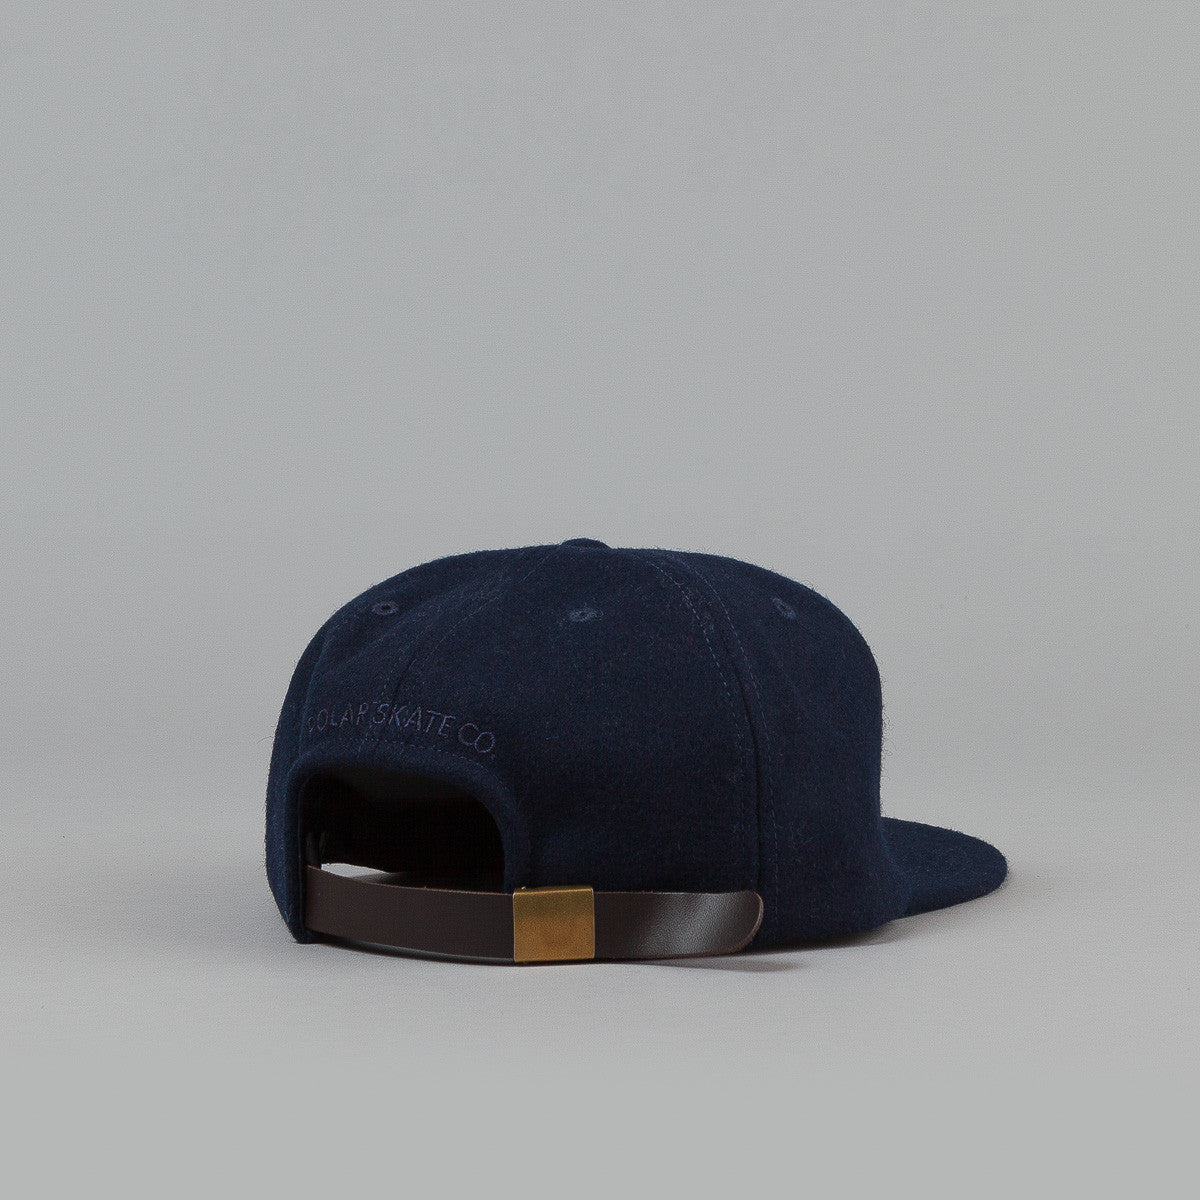 Polar P Wool Cap - Navy / Green